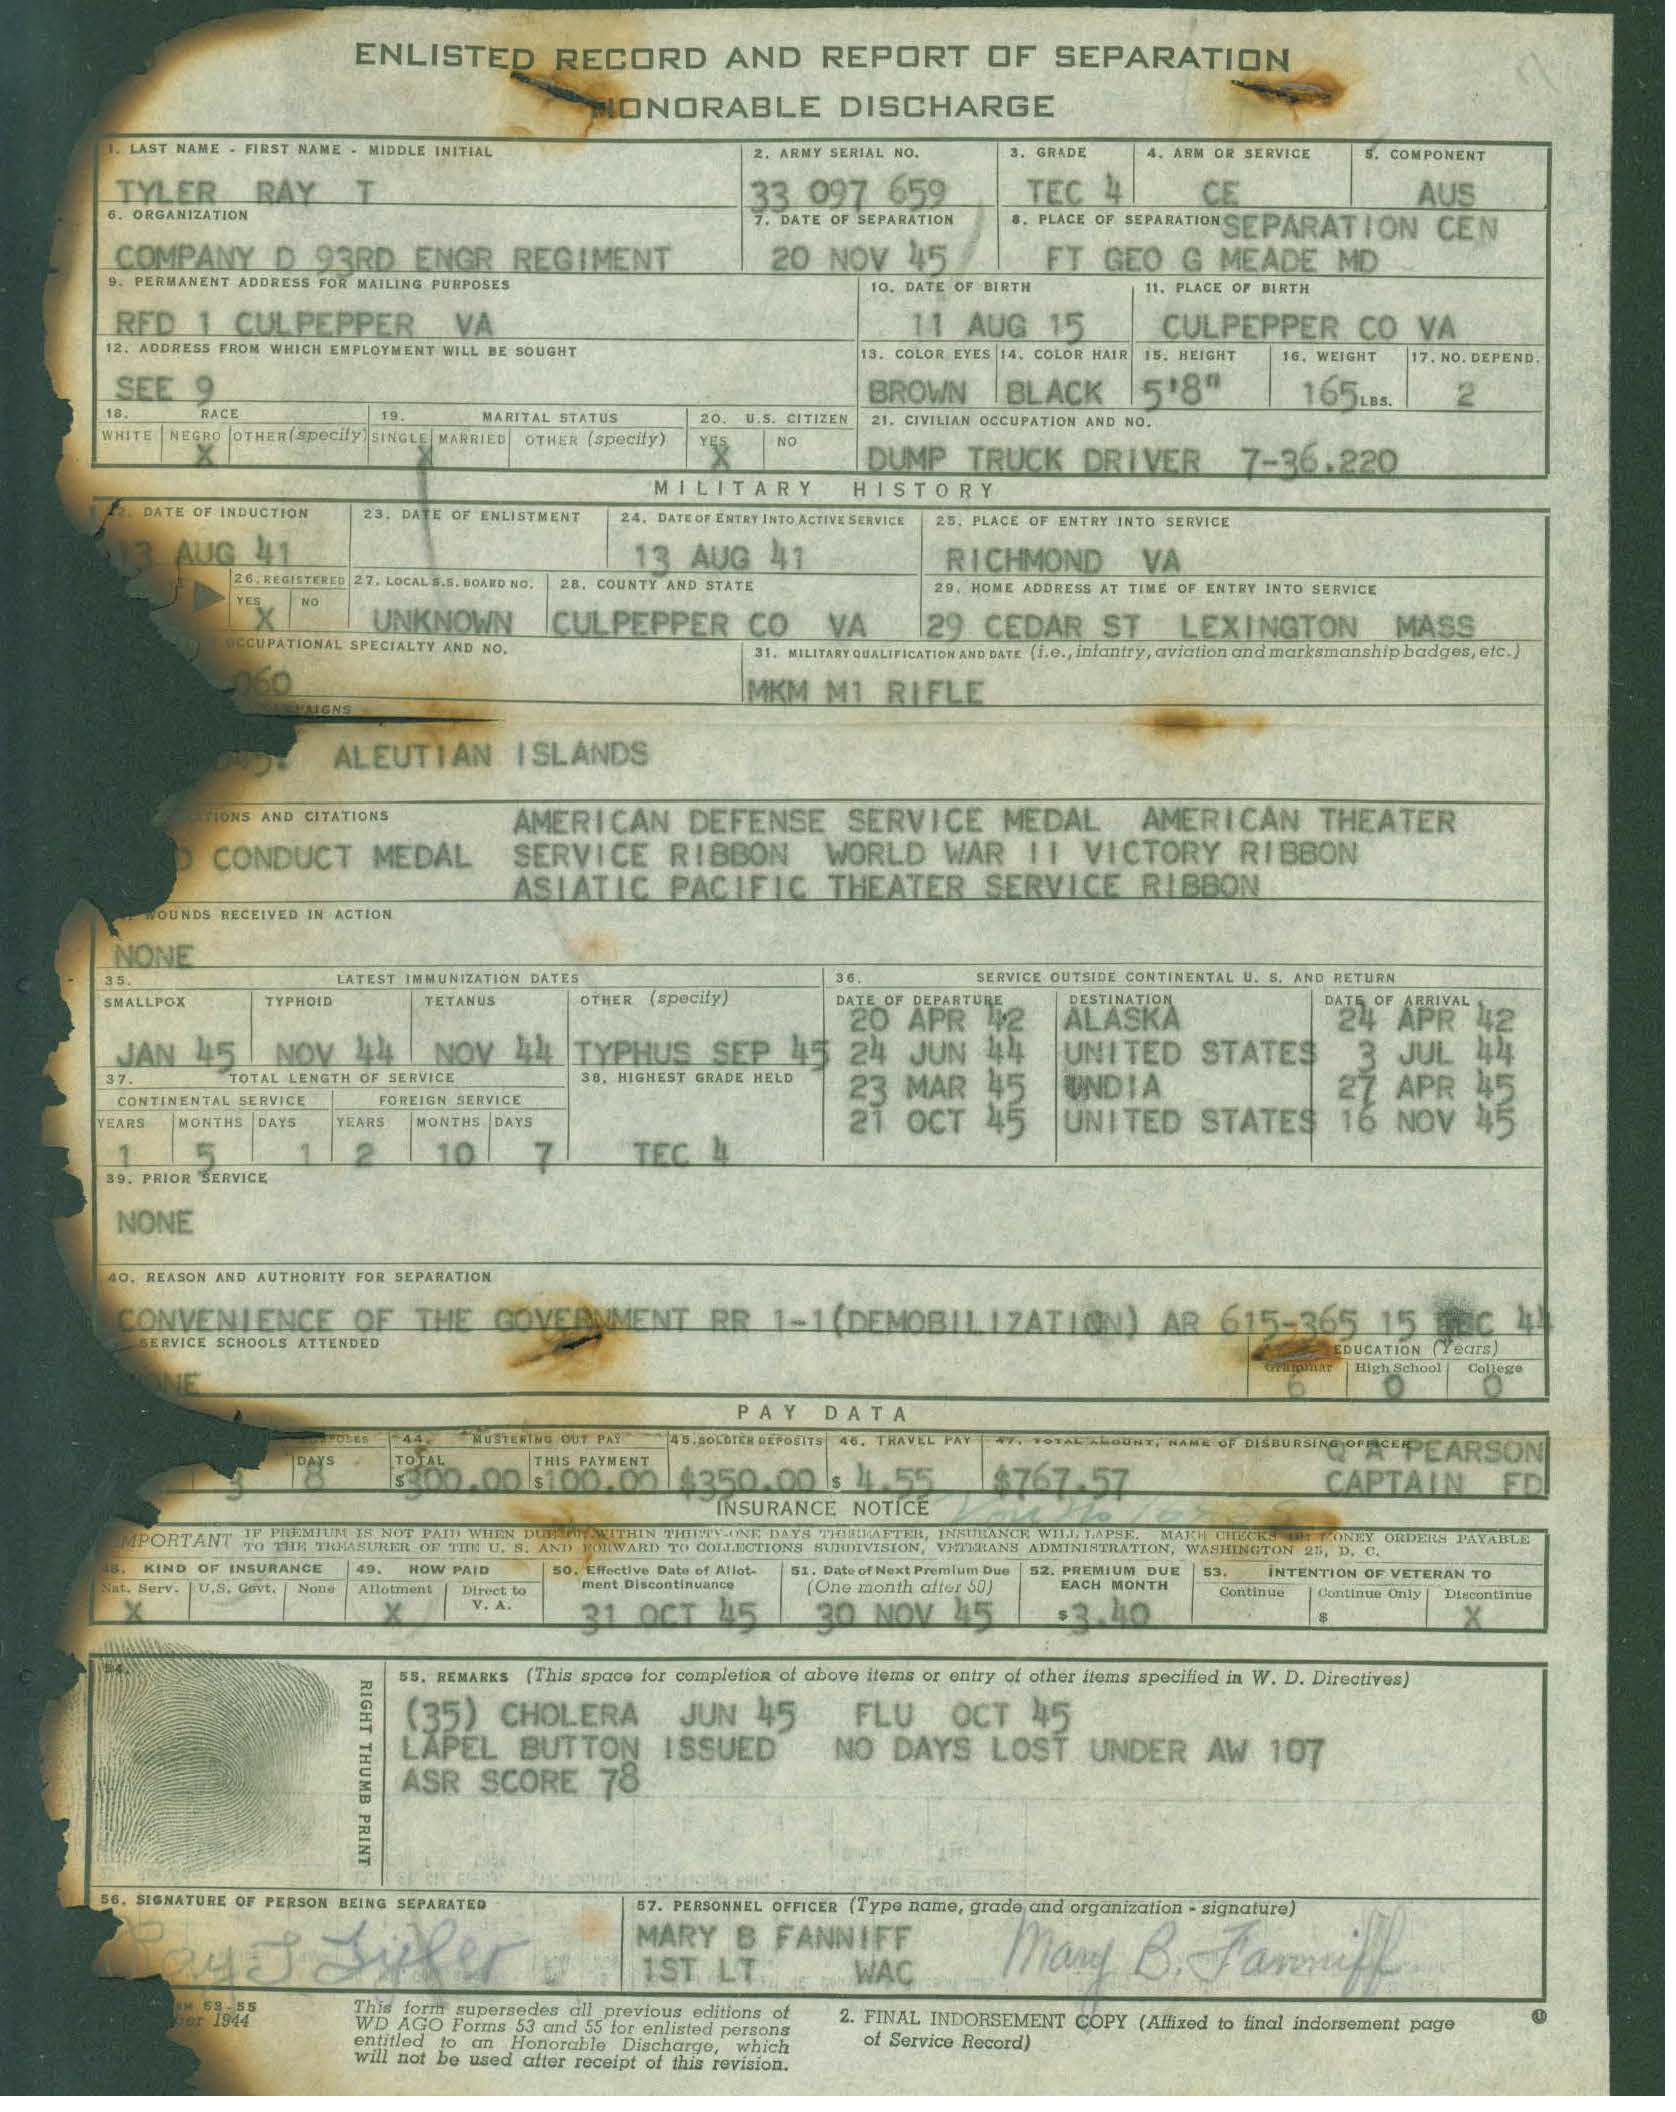 wwii service records by serial number